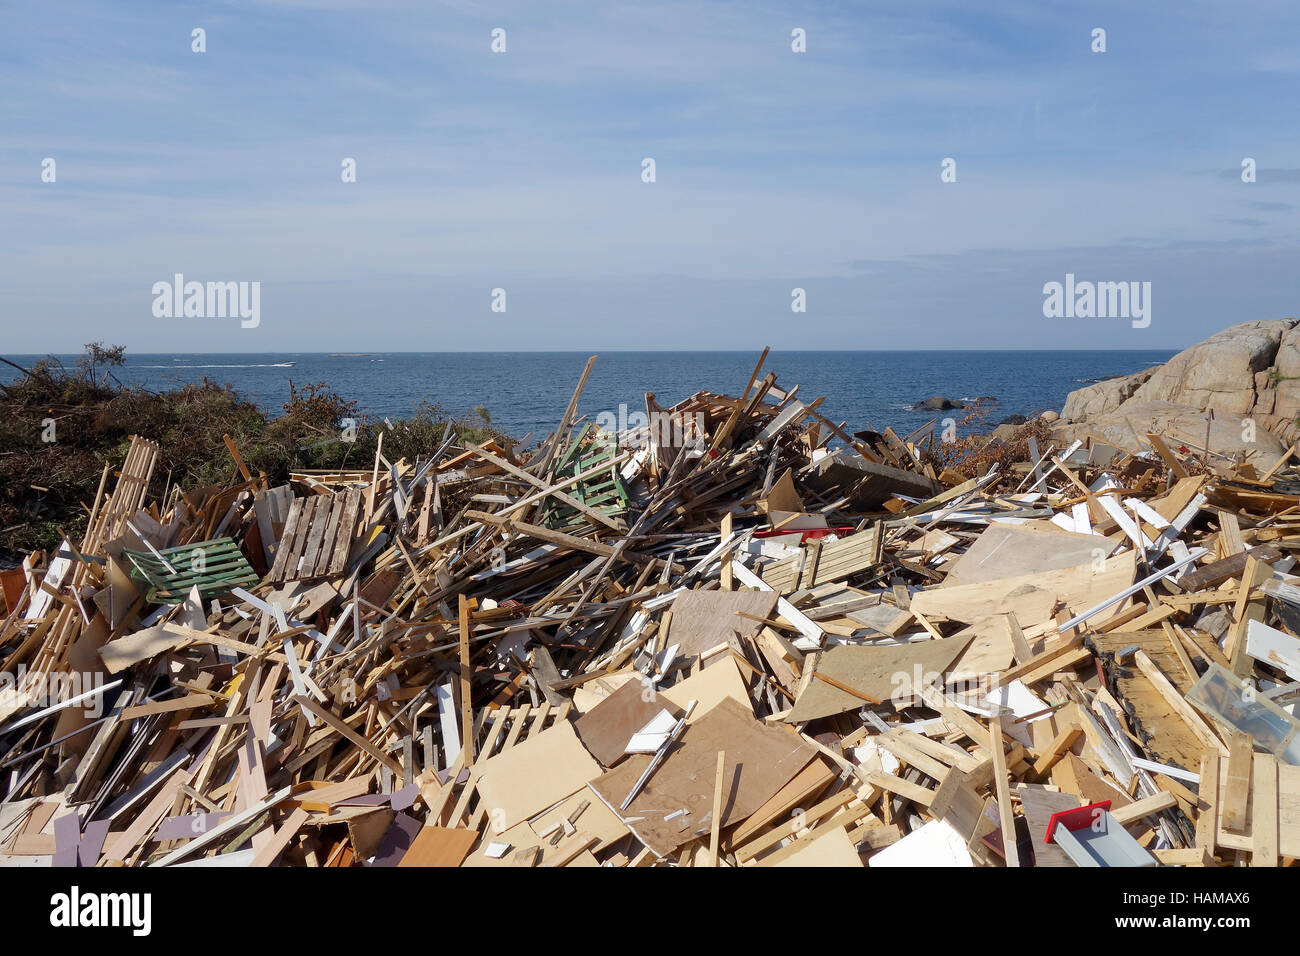 Dumping ground for discarded wood on the coast of Öckerö island, Bohuslan, Sweden - Stock Image